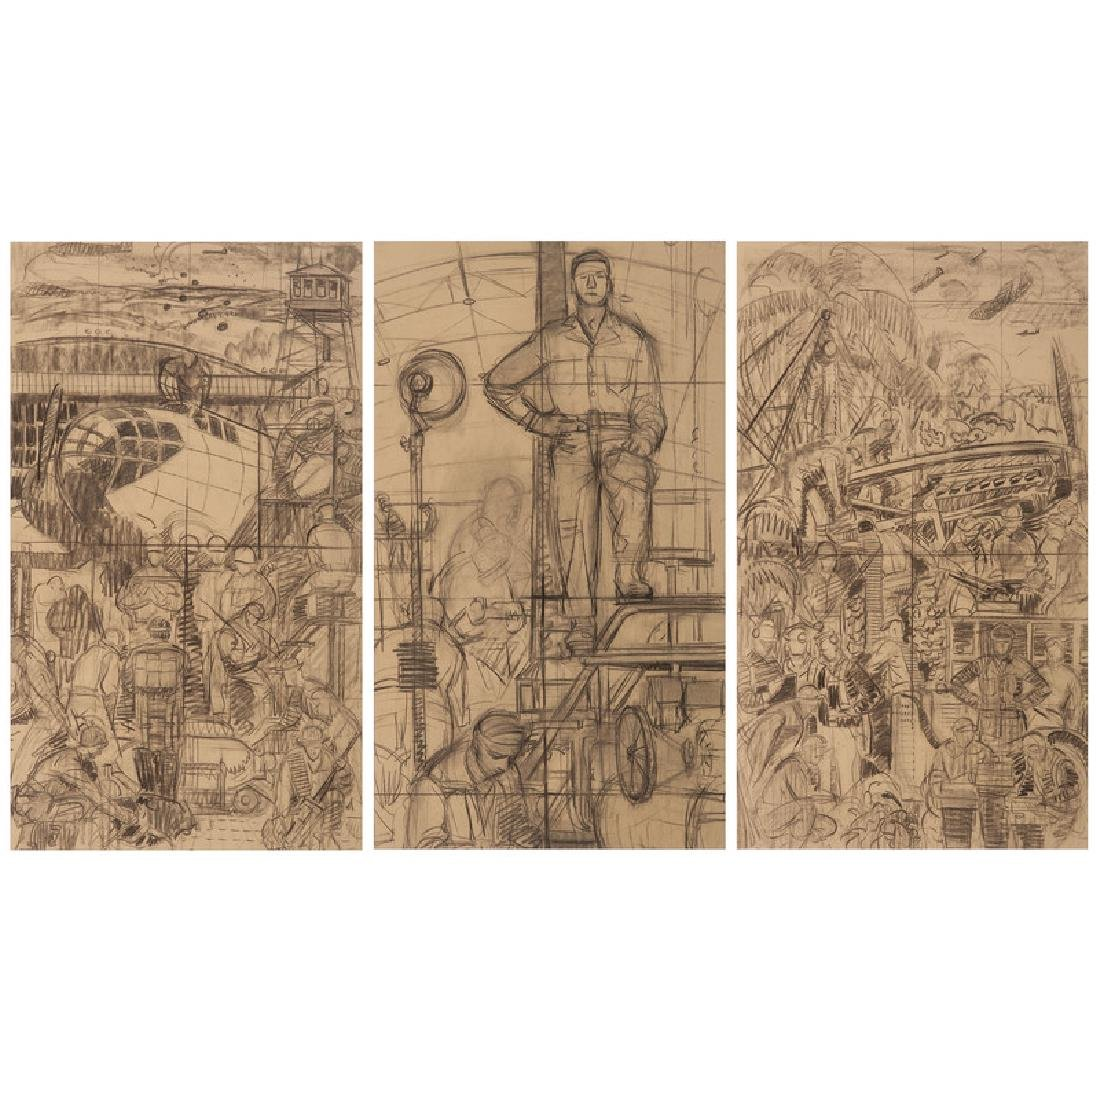 Graphite Sketches for Murals at Pendleton Field Air